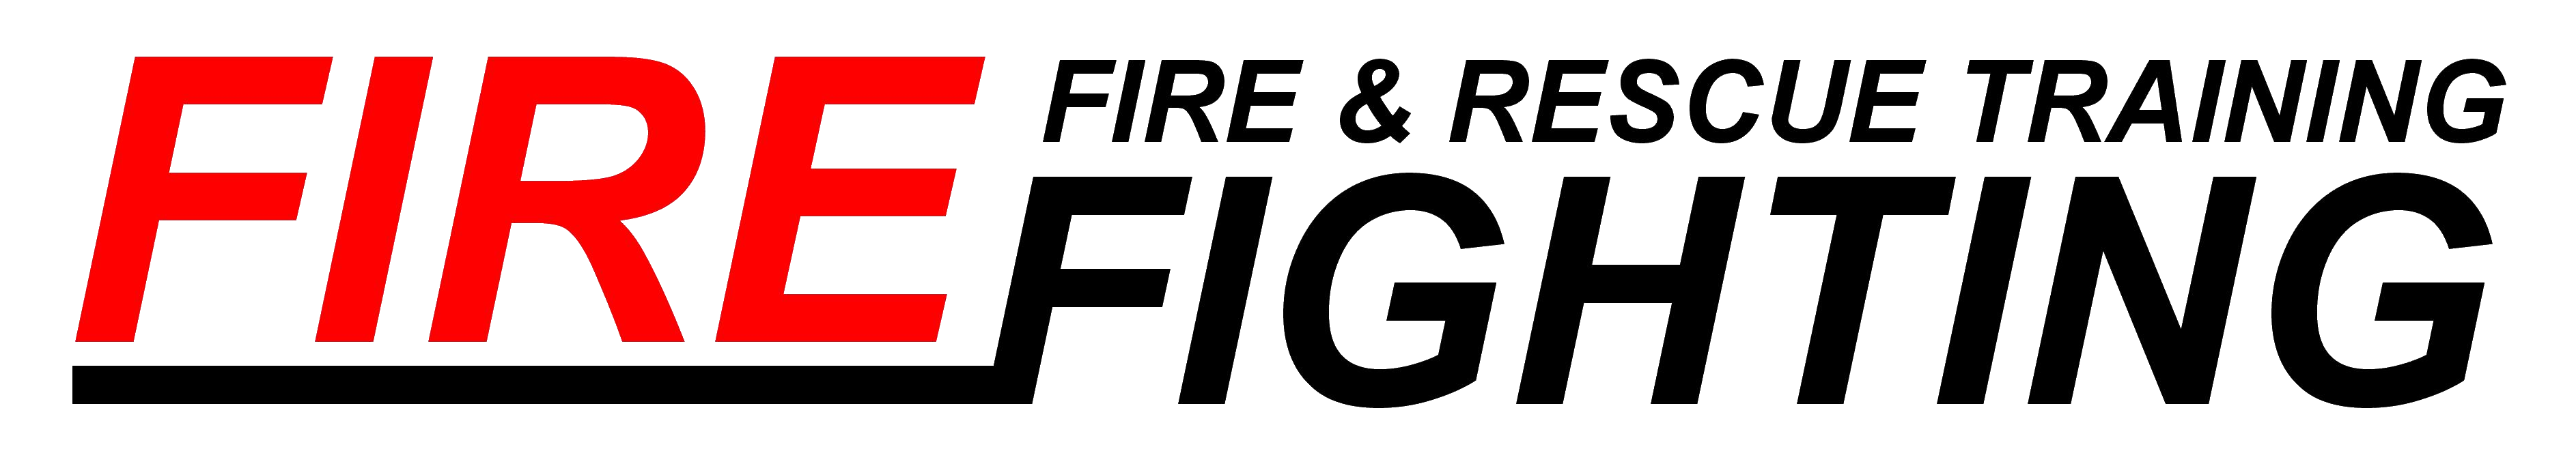 Firefighting | Fire & Rescue Training